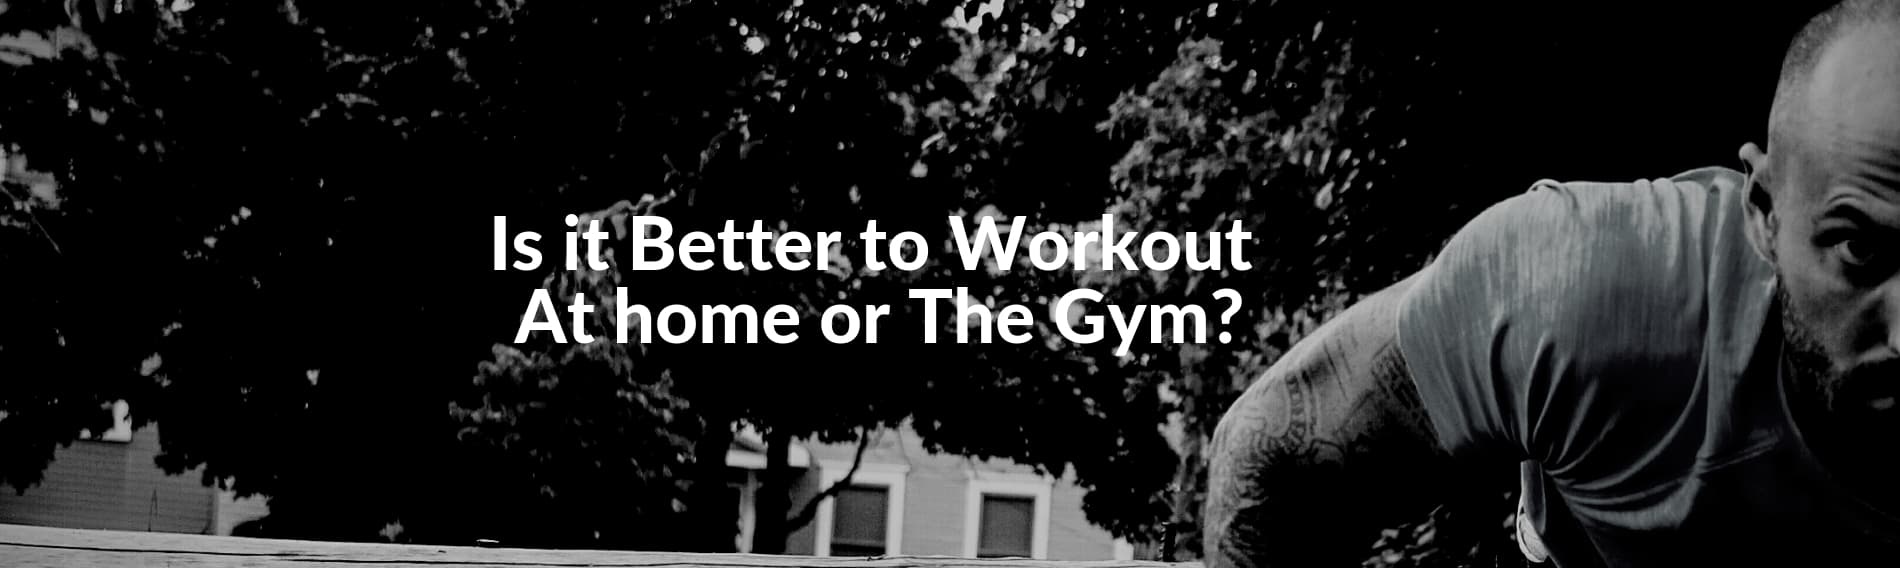 Is it Better to Workout At home or The Gym?